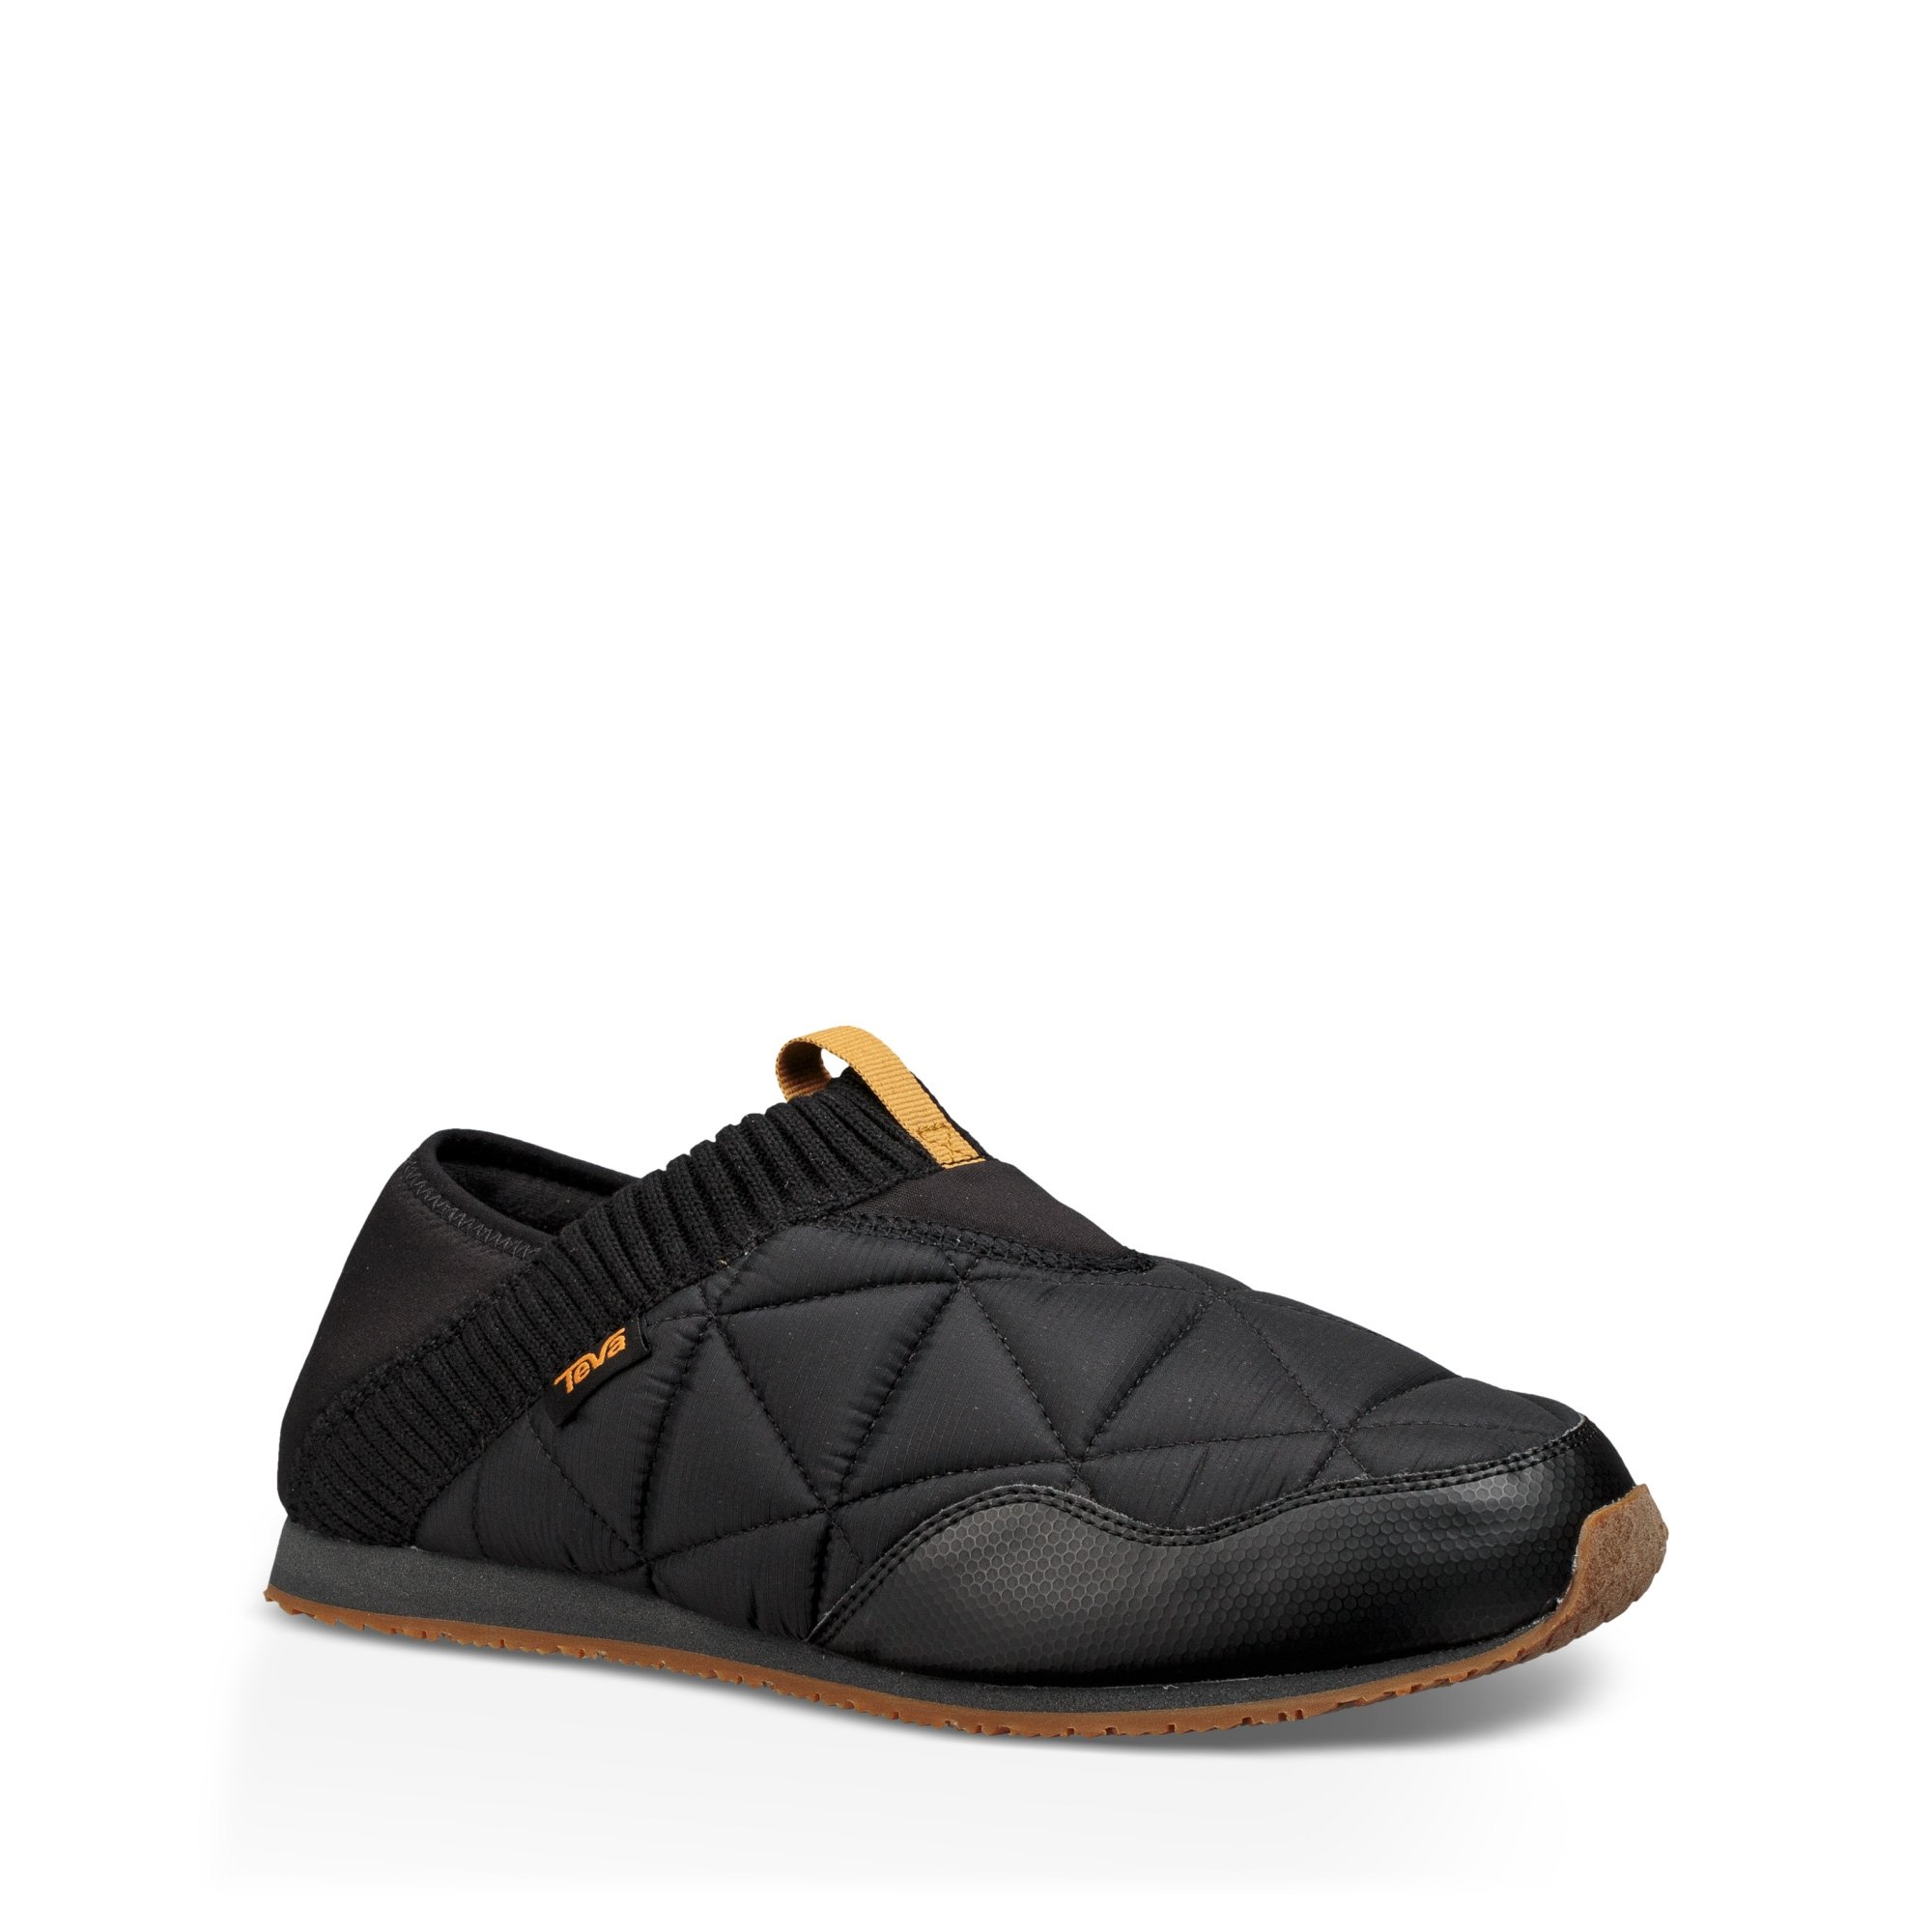 Teva Ember Moc Men's Casual 9 Black